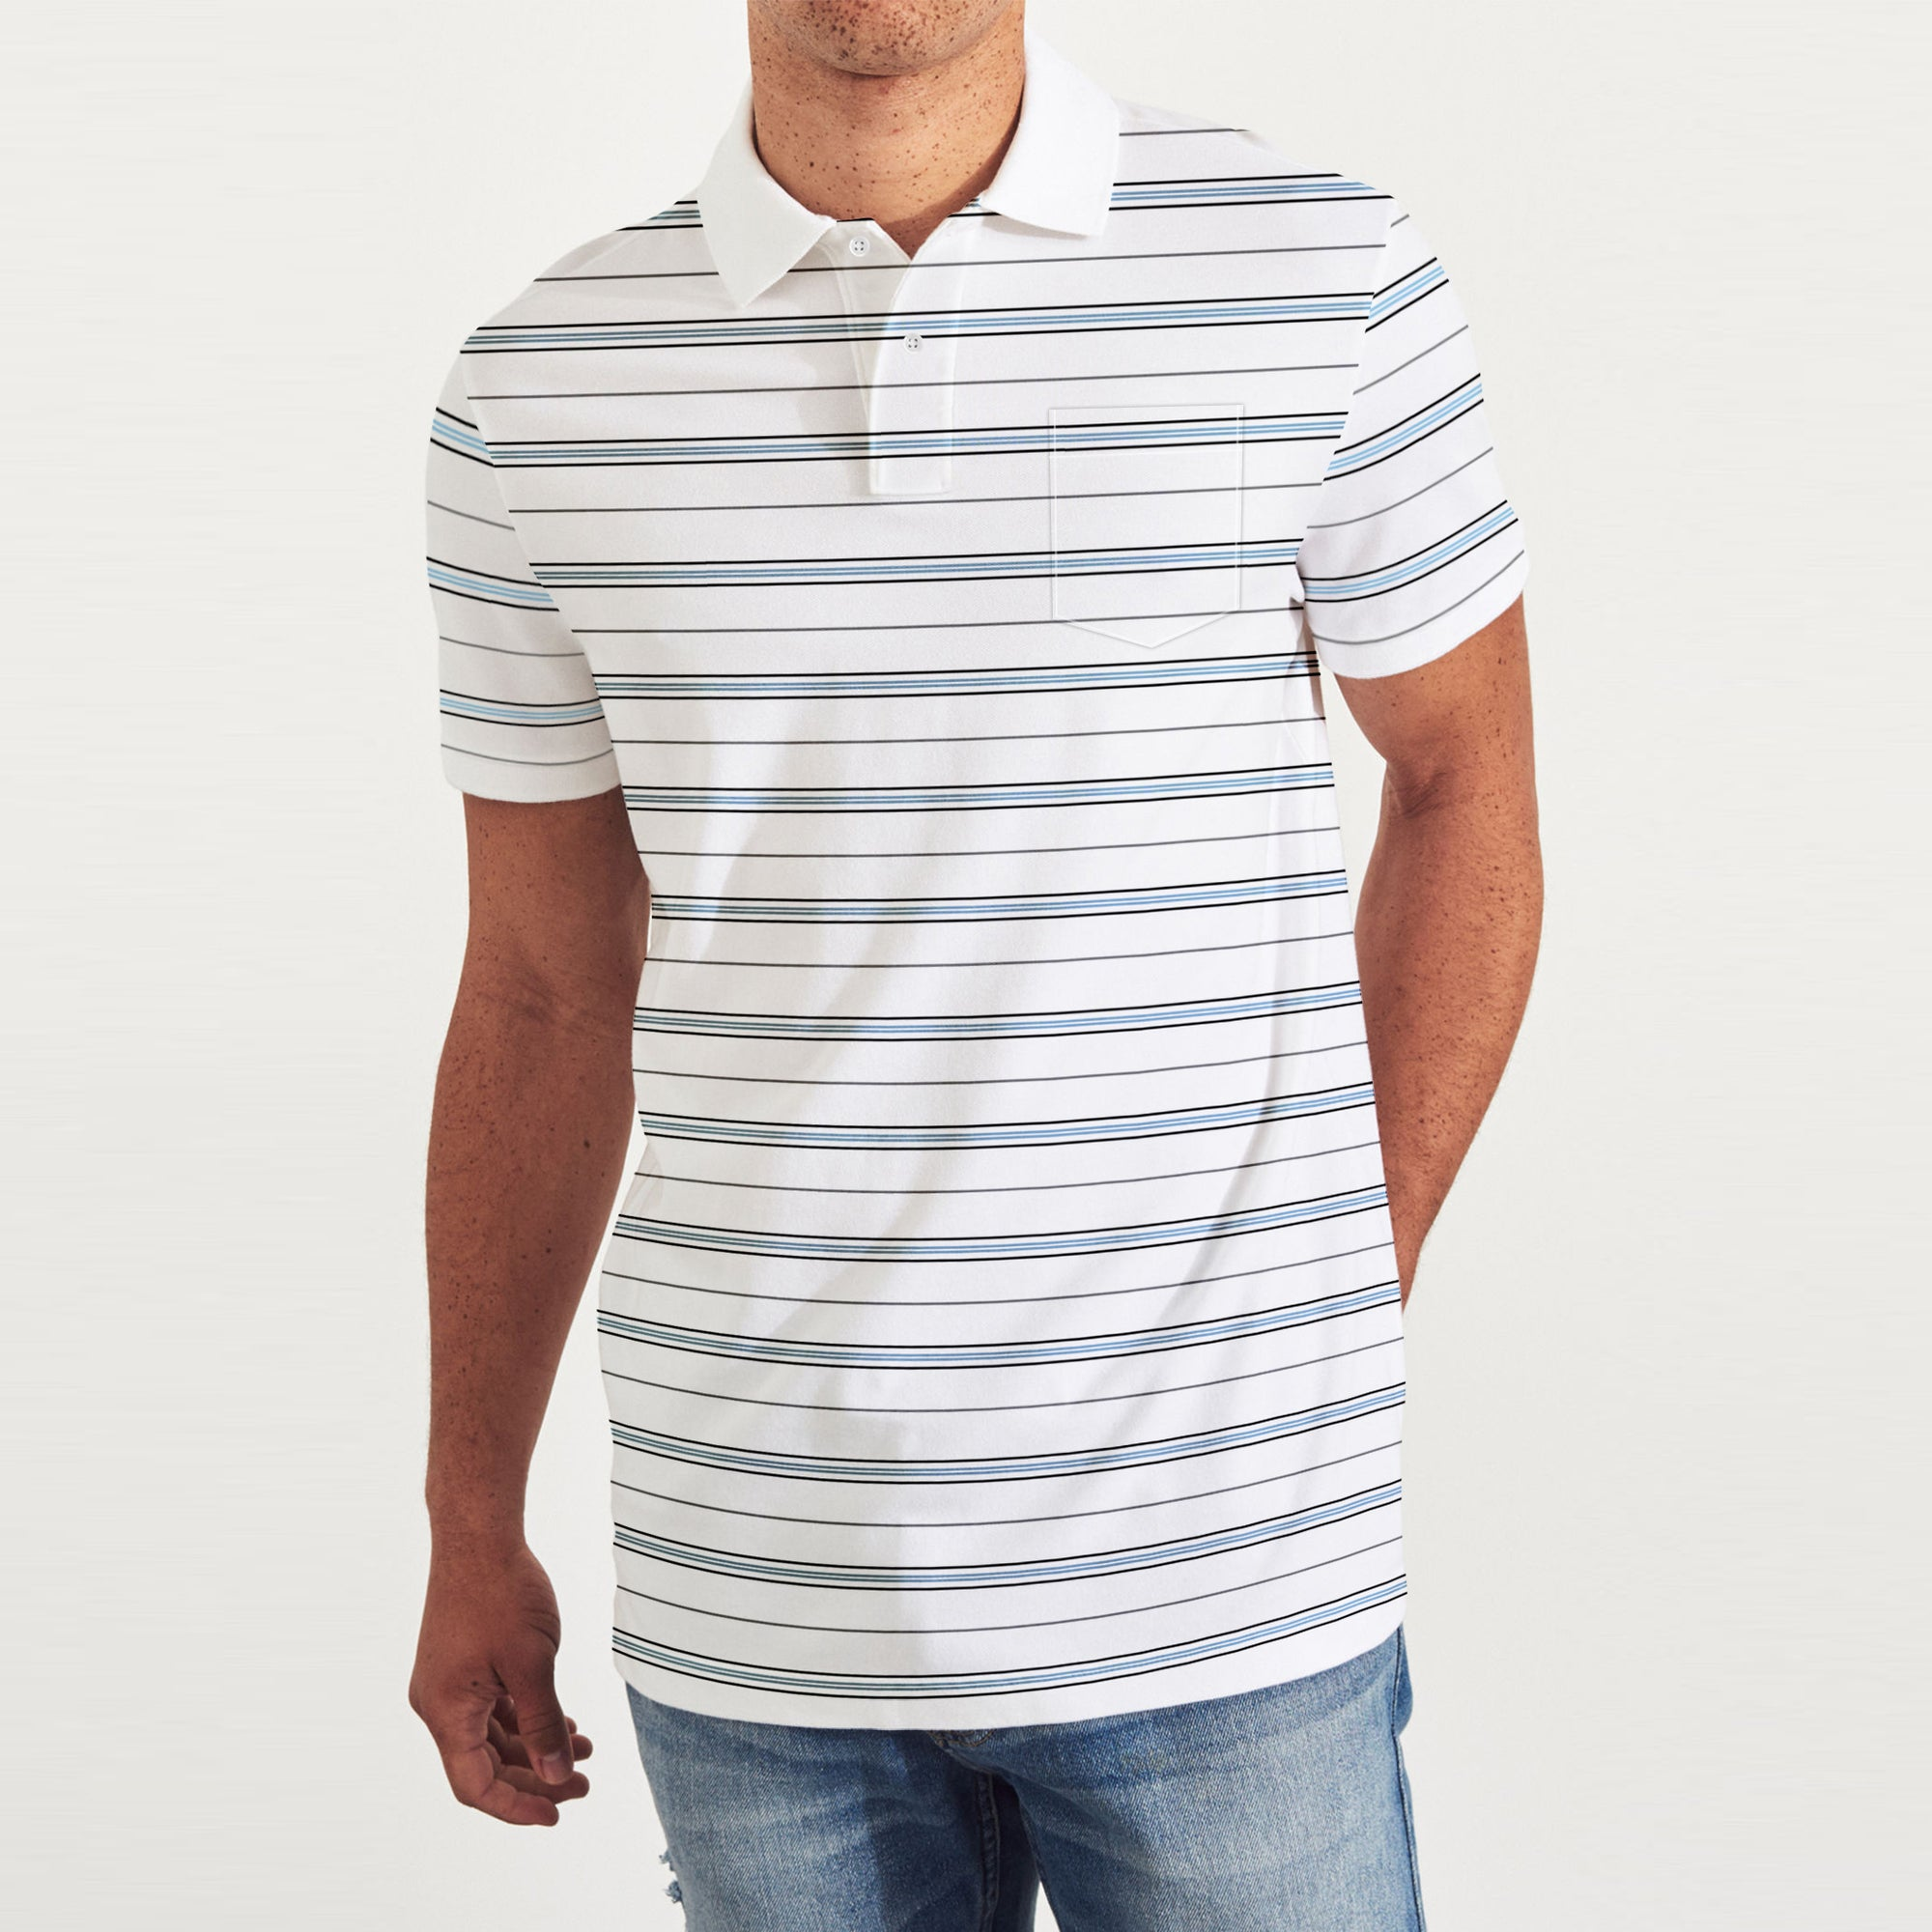 brandsego - Covington Short Sleeve Single Jersey Polo Shirt For Men-White with Stripe-BE8388